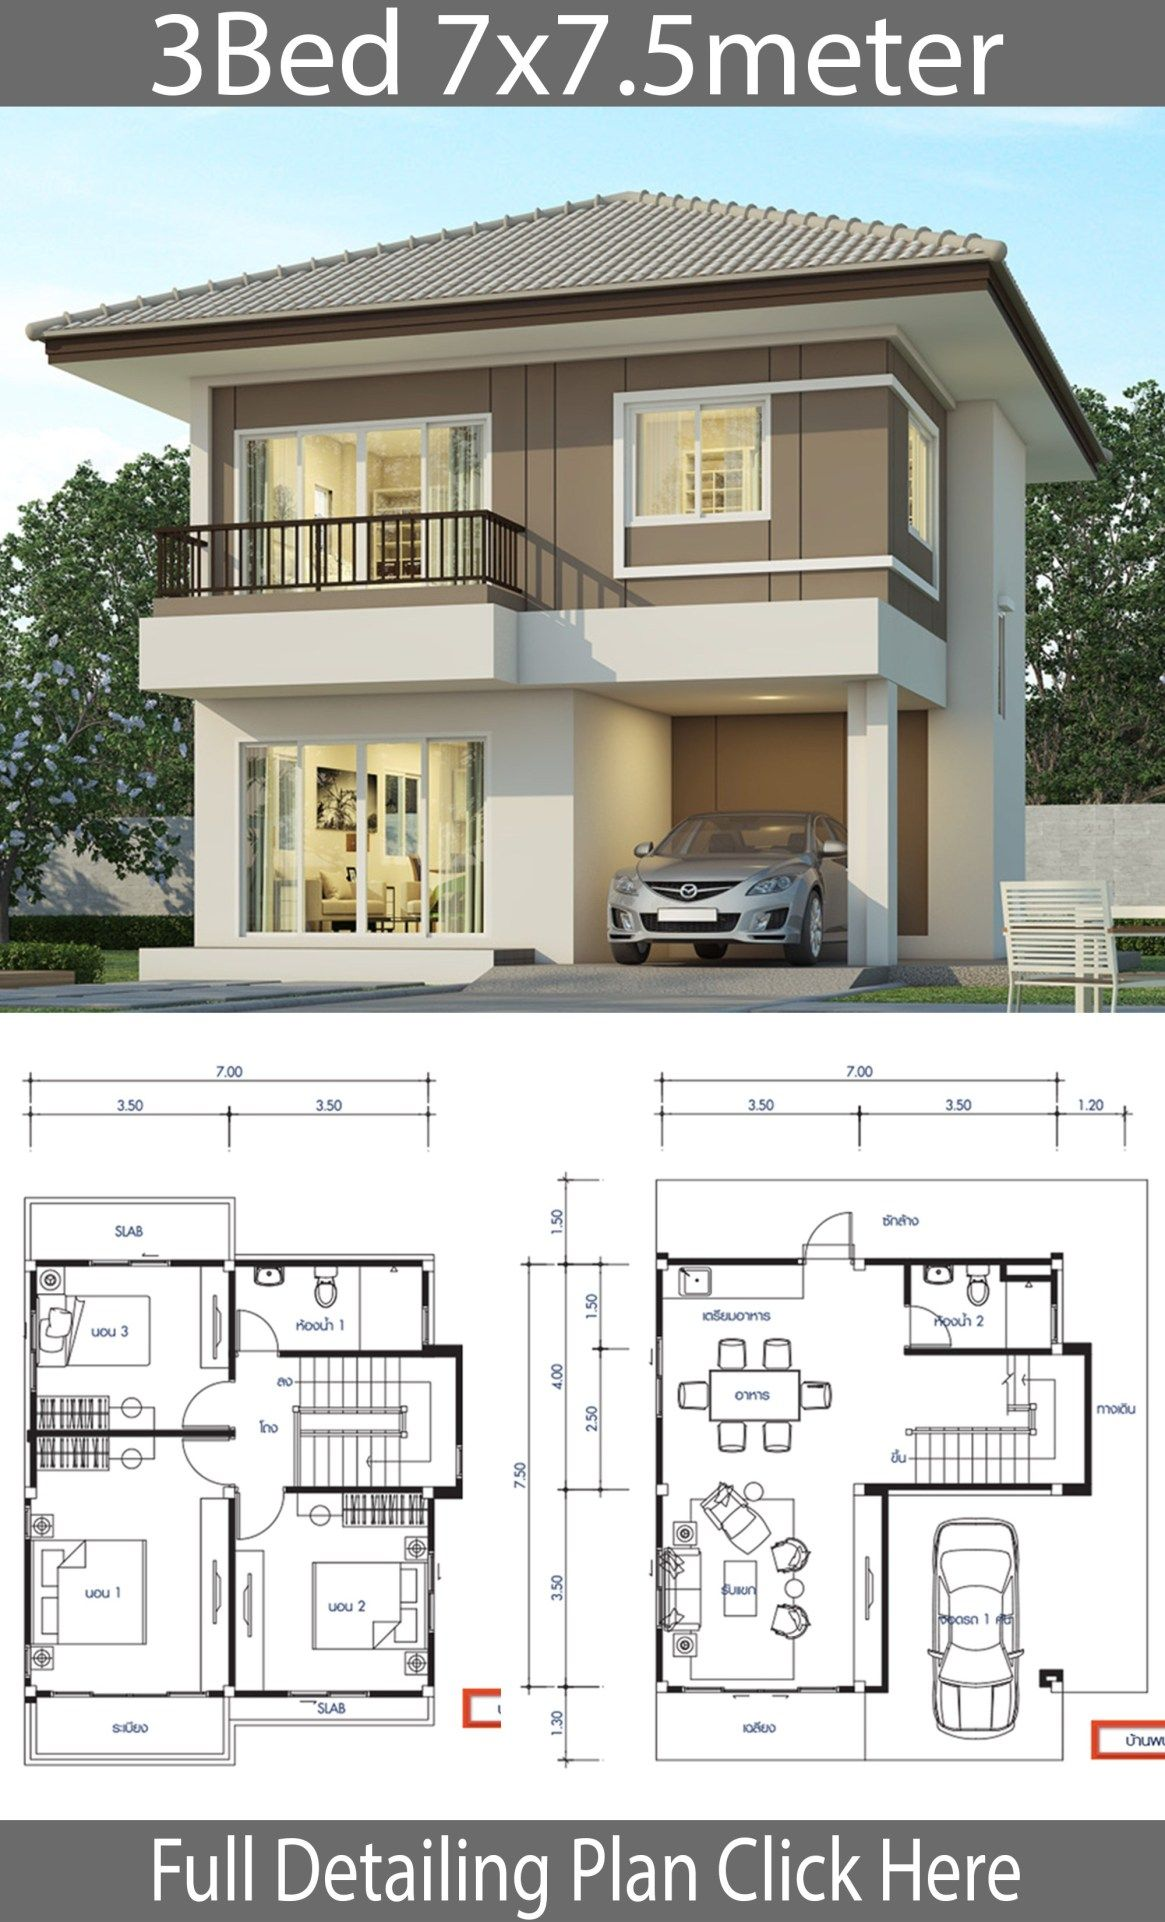 House Design Plan 7x7 5m With 3 Bedrooms Home Design With Plansearch House Construction Plan Bungalow House Design Architectural House Plans